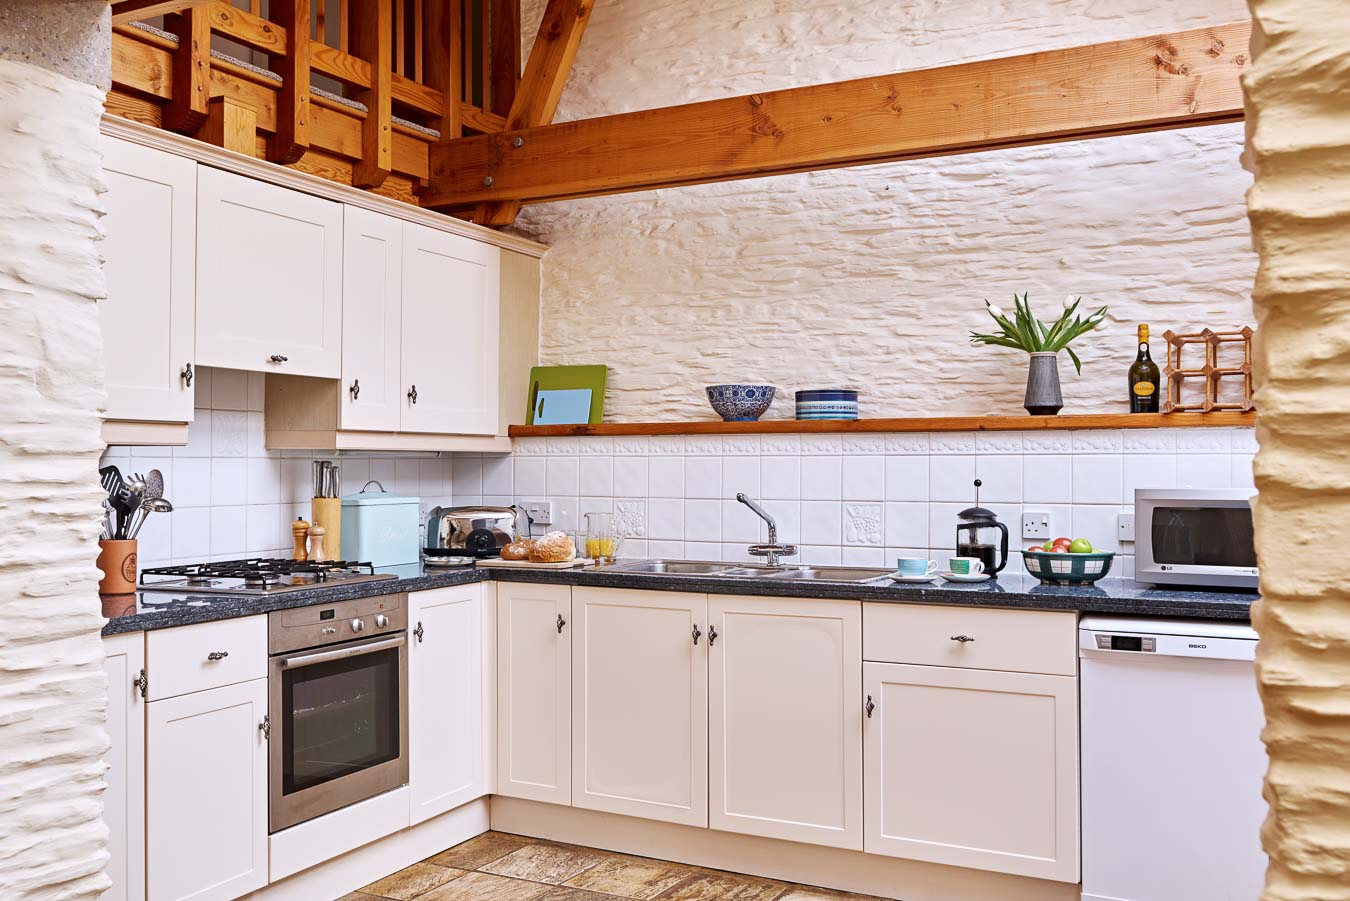 The shaker style kitchen in the Linhay cottage with black granite work tops and heated tiled floor at Flear Farm.